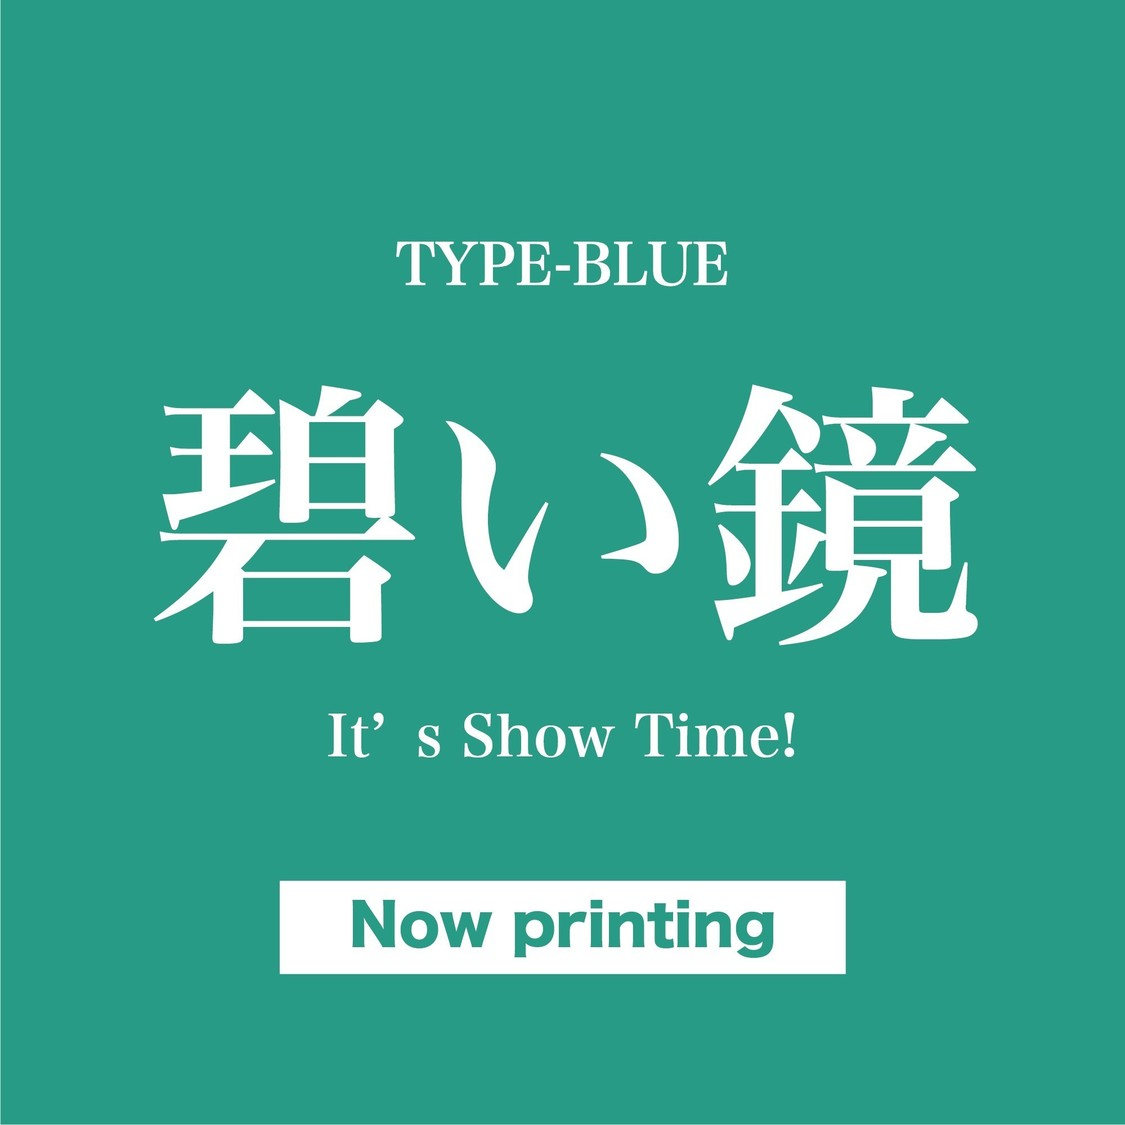 2nd EP『碧い鏡/It's Show Time!』Type-BLUE ジャケット写真